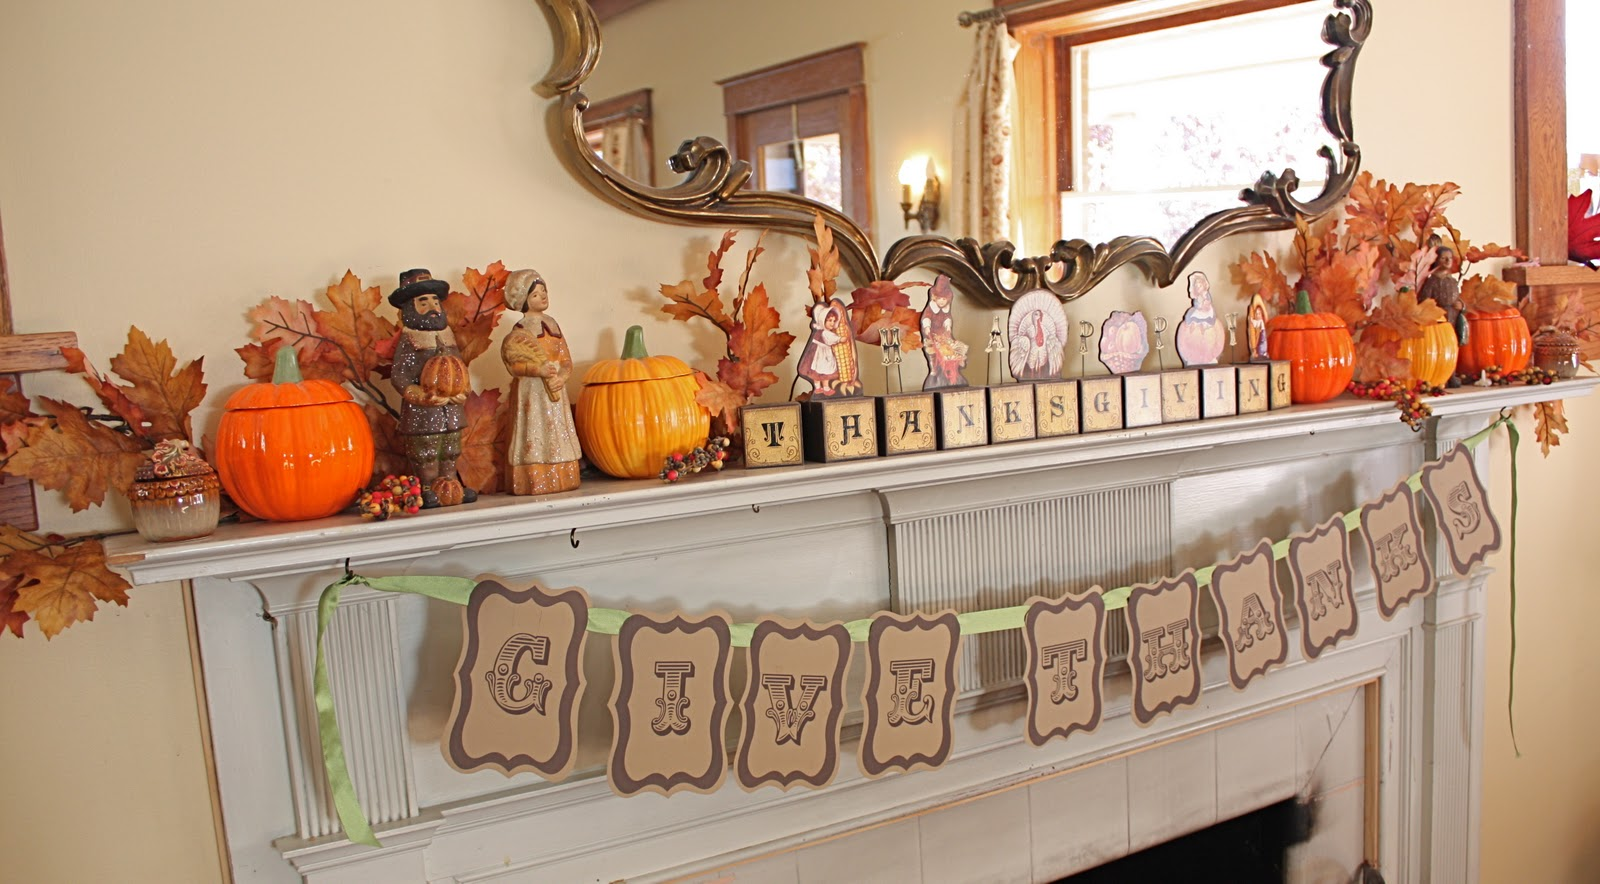 At second street thanksgiving mantel and other decor for Thanksgiving 2016 home decorations